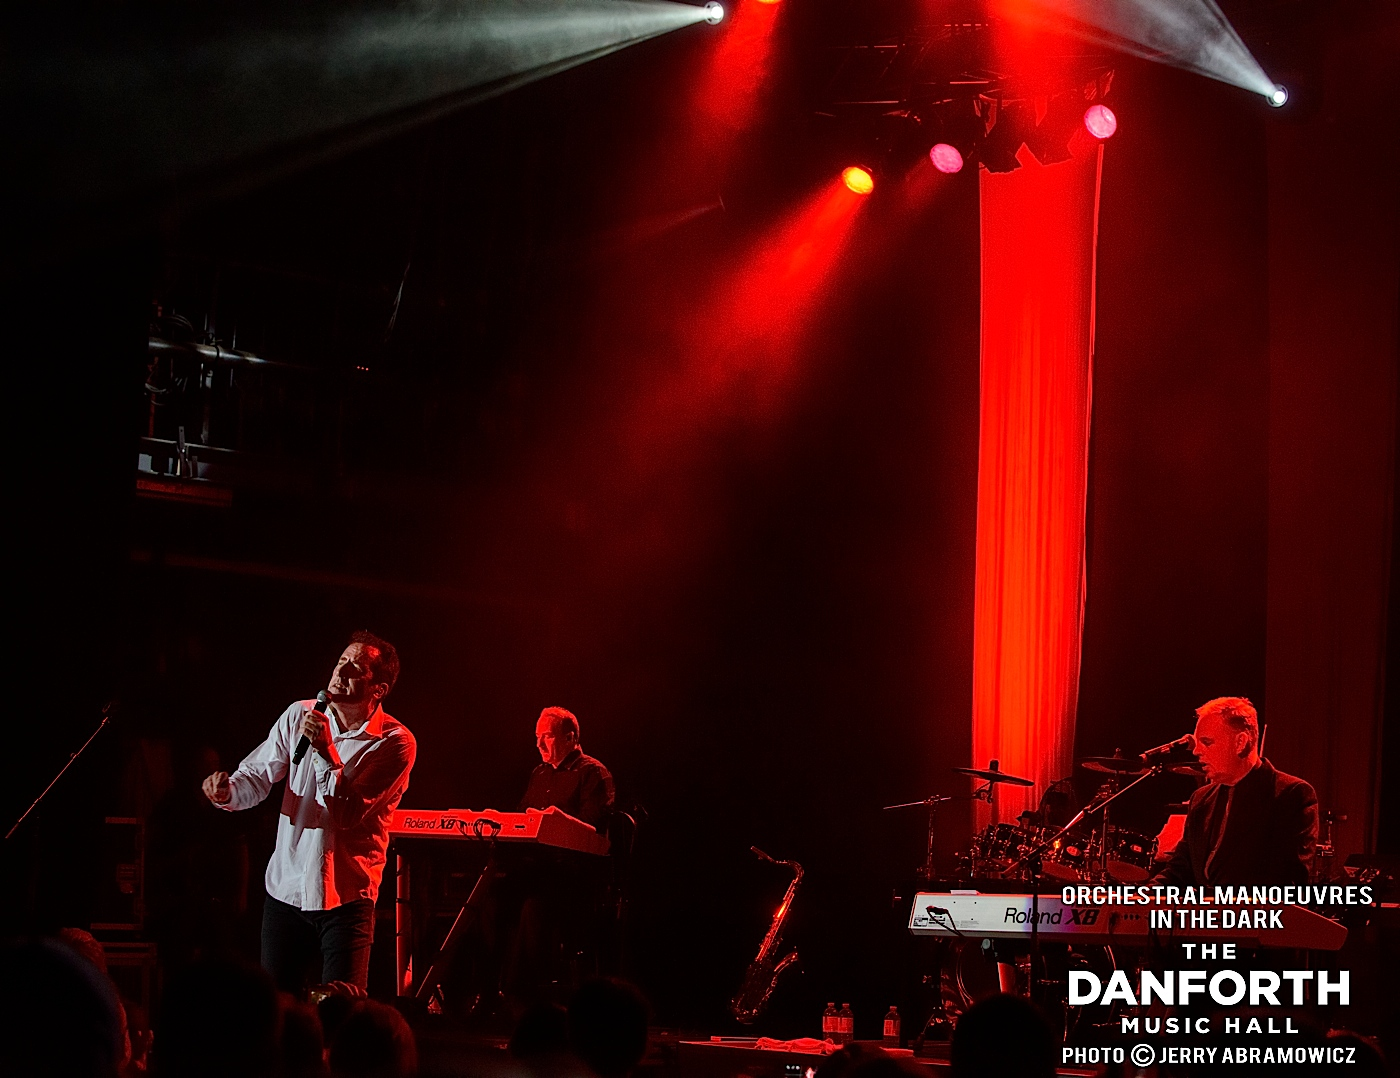 20130711 Orchestral Manoeuvres in the Dark at The Danforth Music Hall 0212